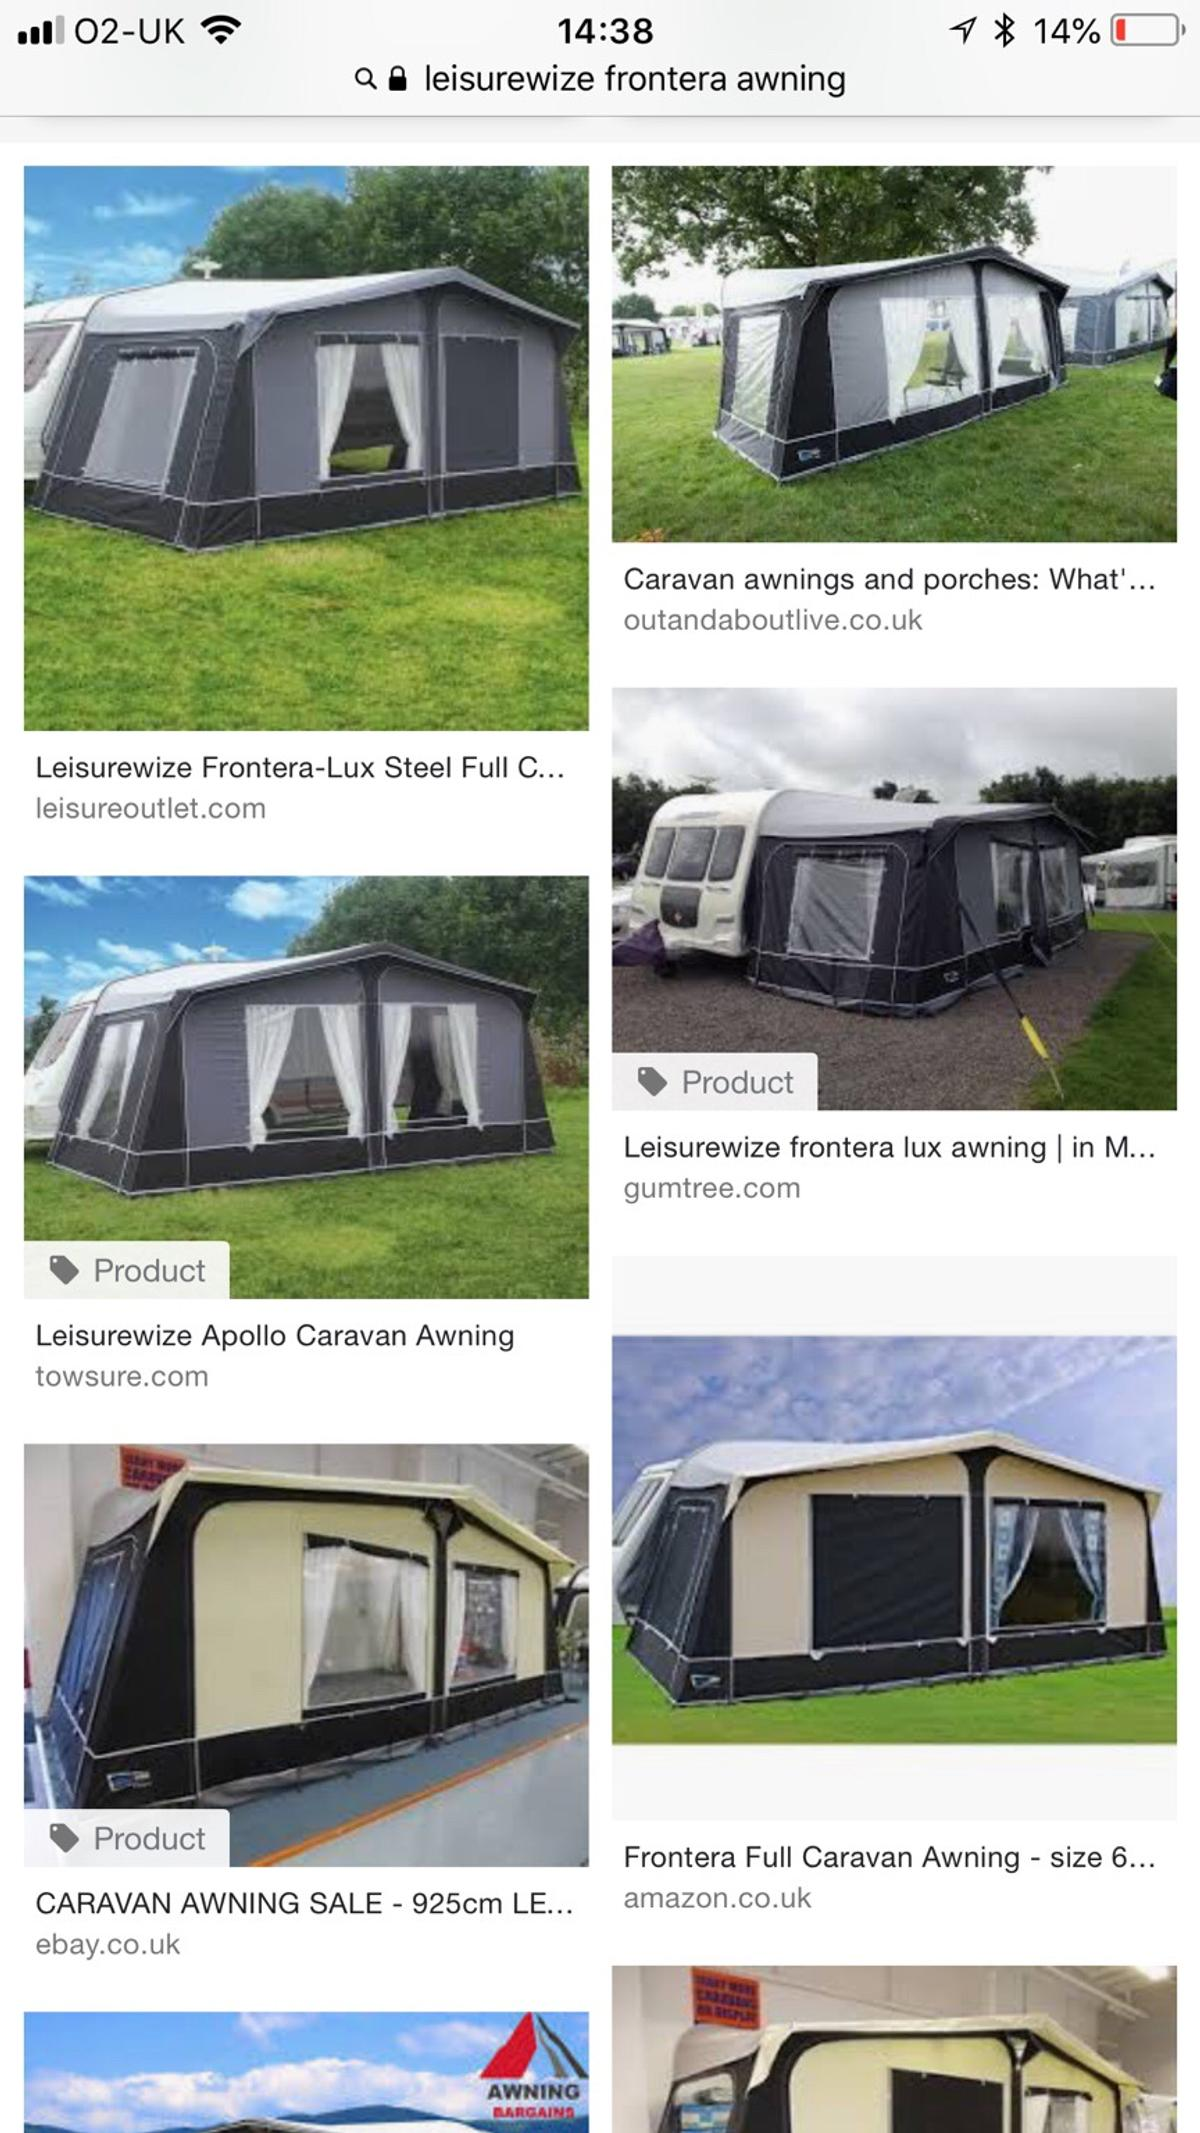 Leisure wise caravan awning in WF9 Wakefield for £350 00 for